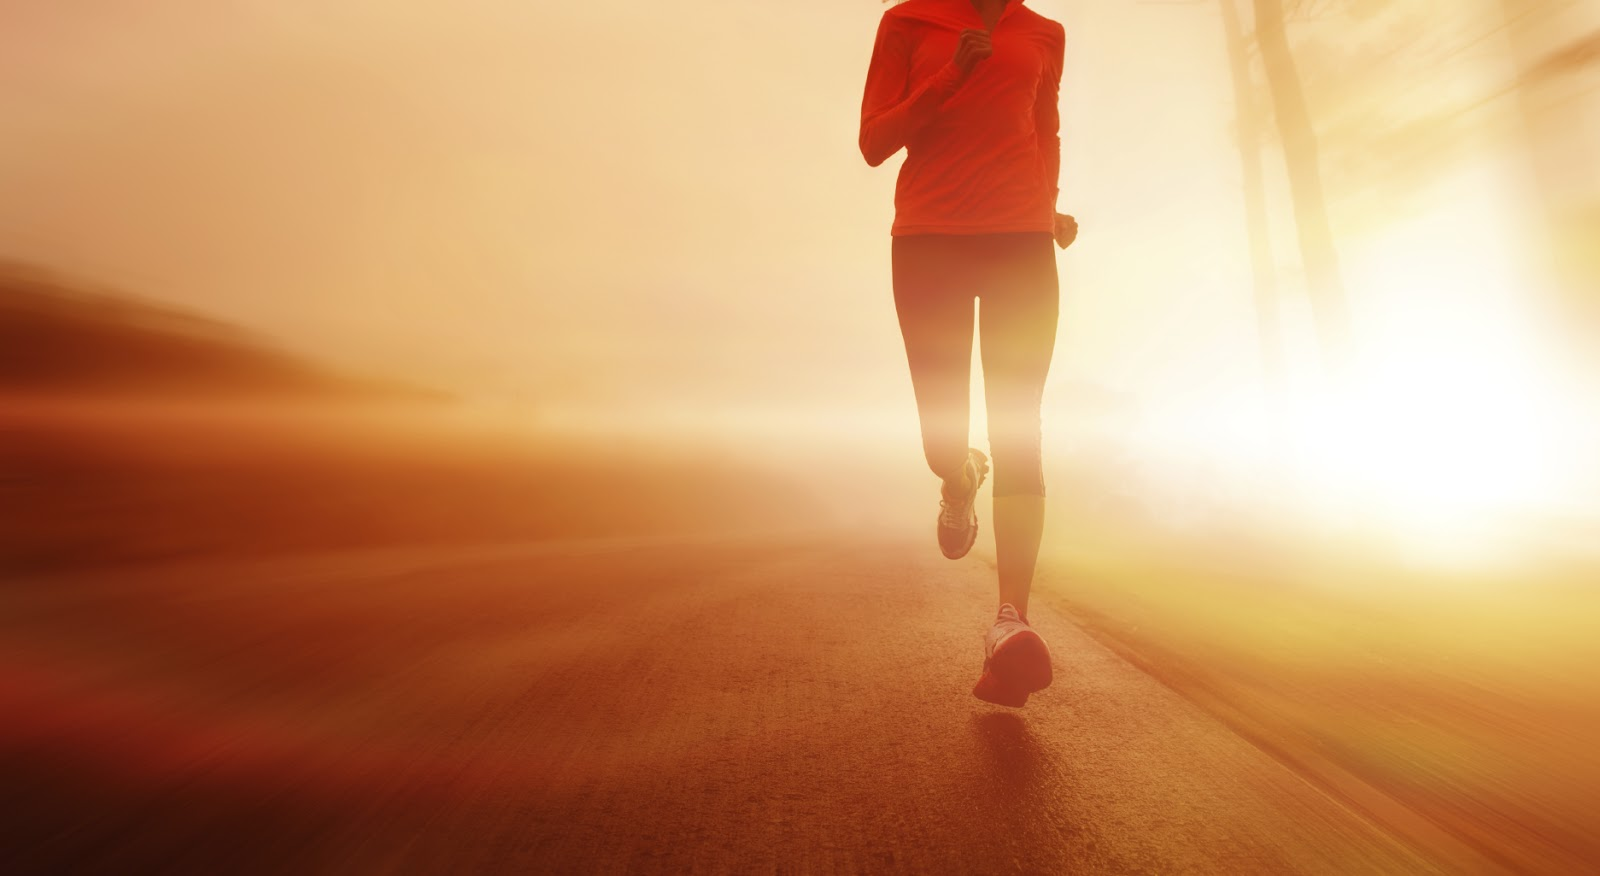 Is running in the morning good for burning fat